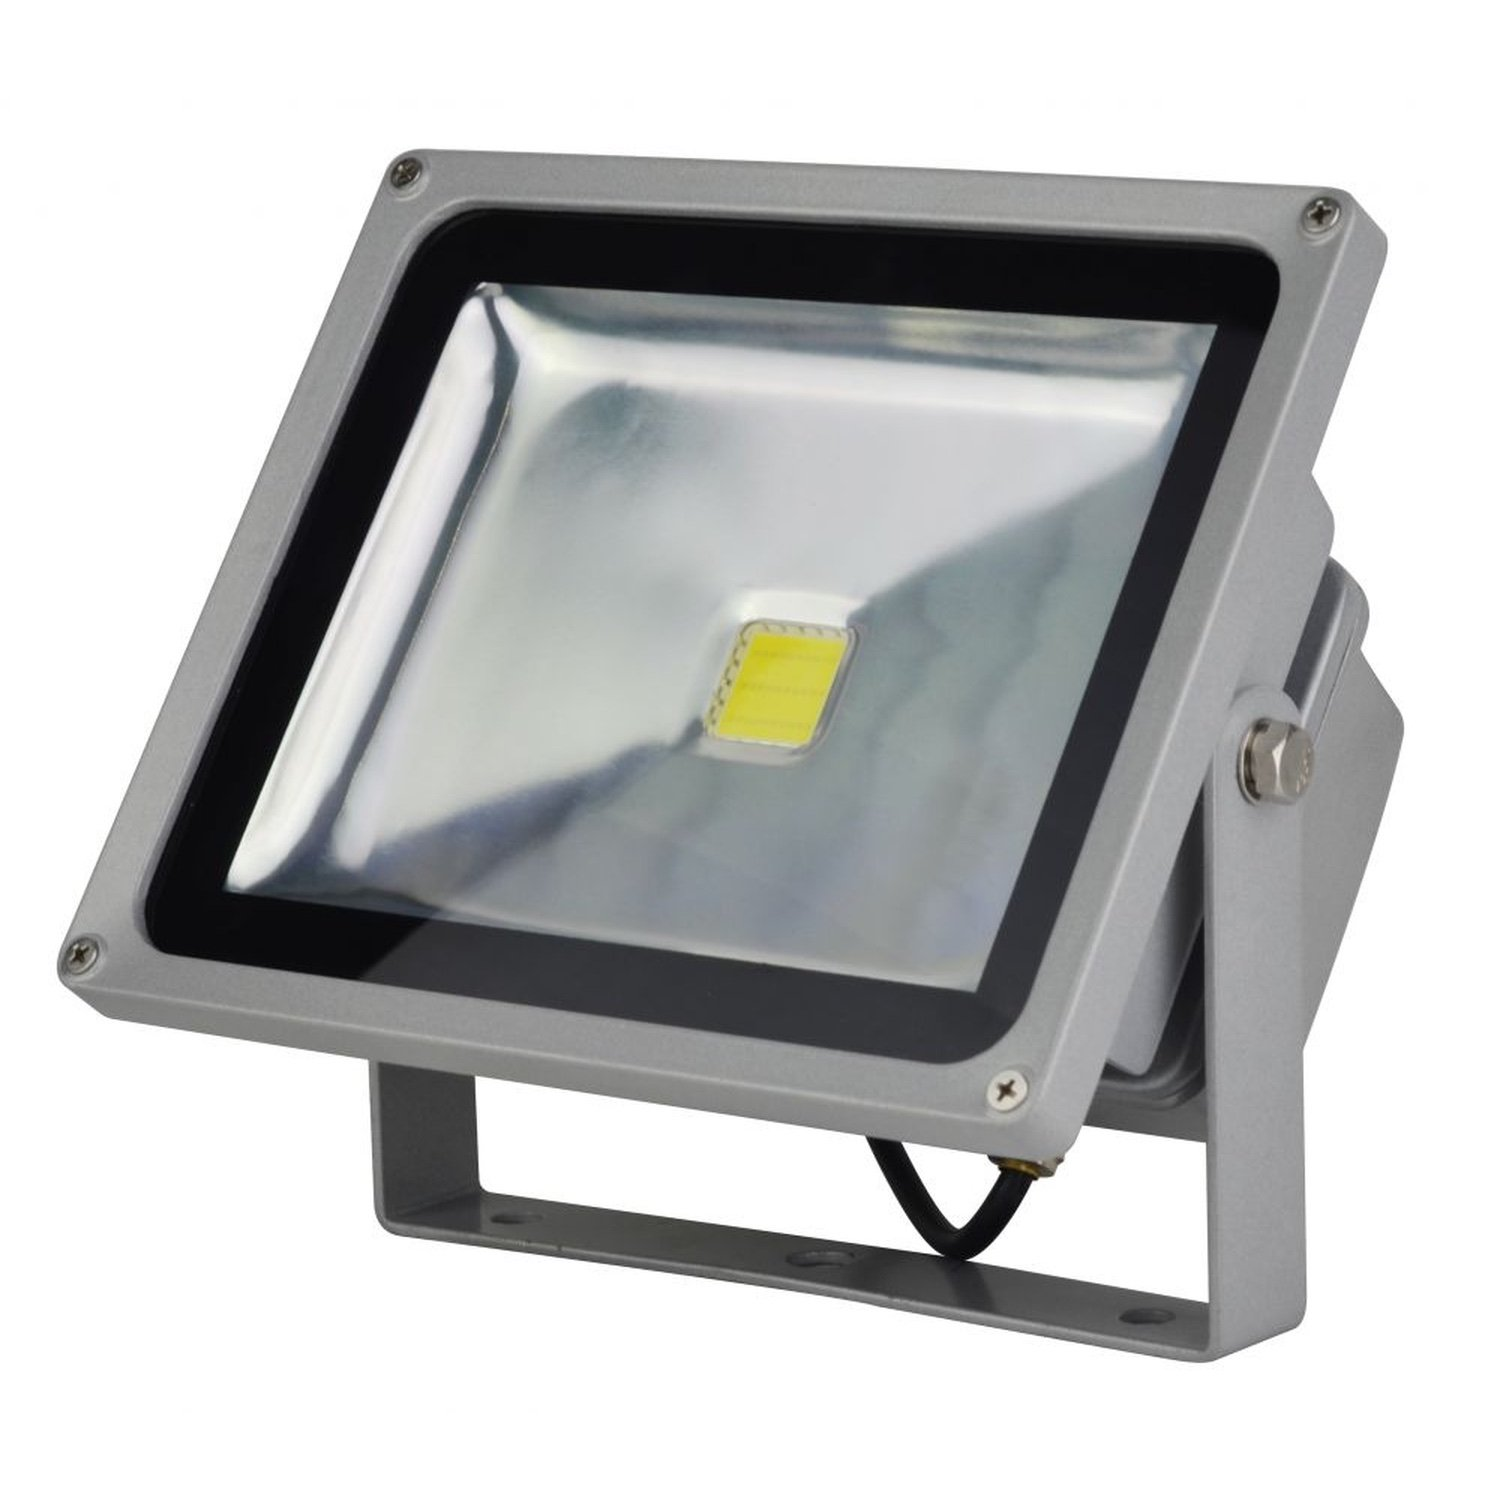 LED Spotlight Spotlight 50W 6500K Bright Light